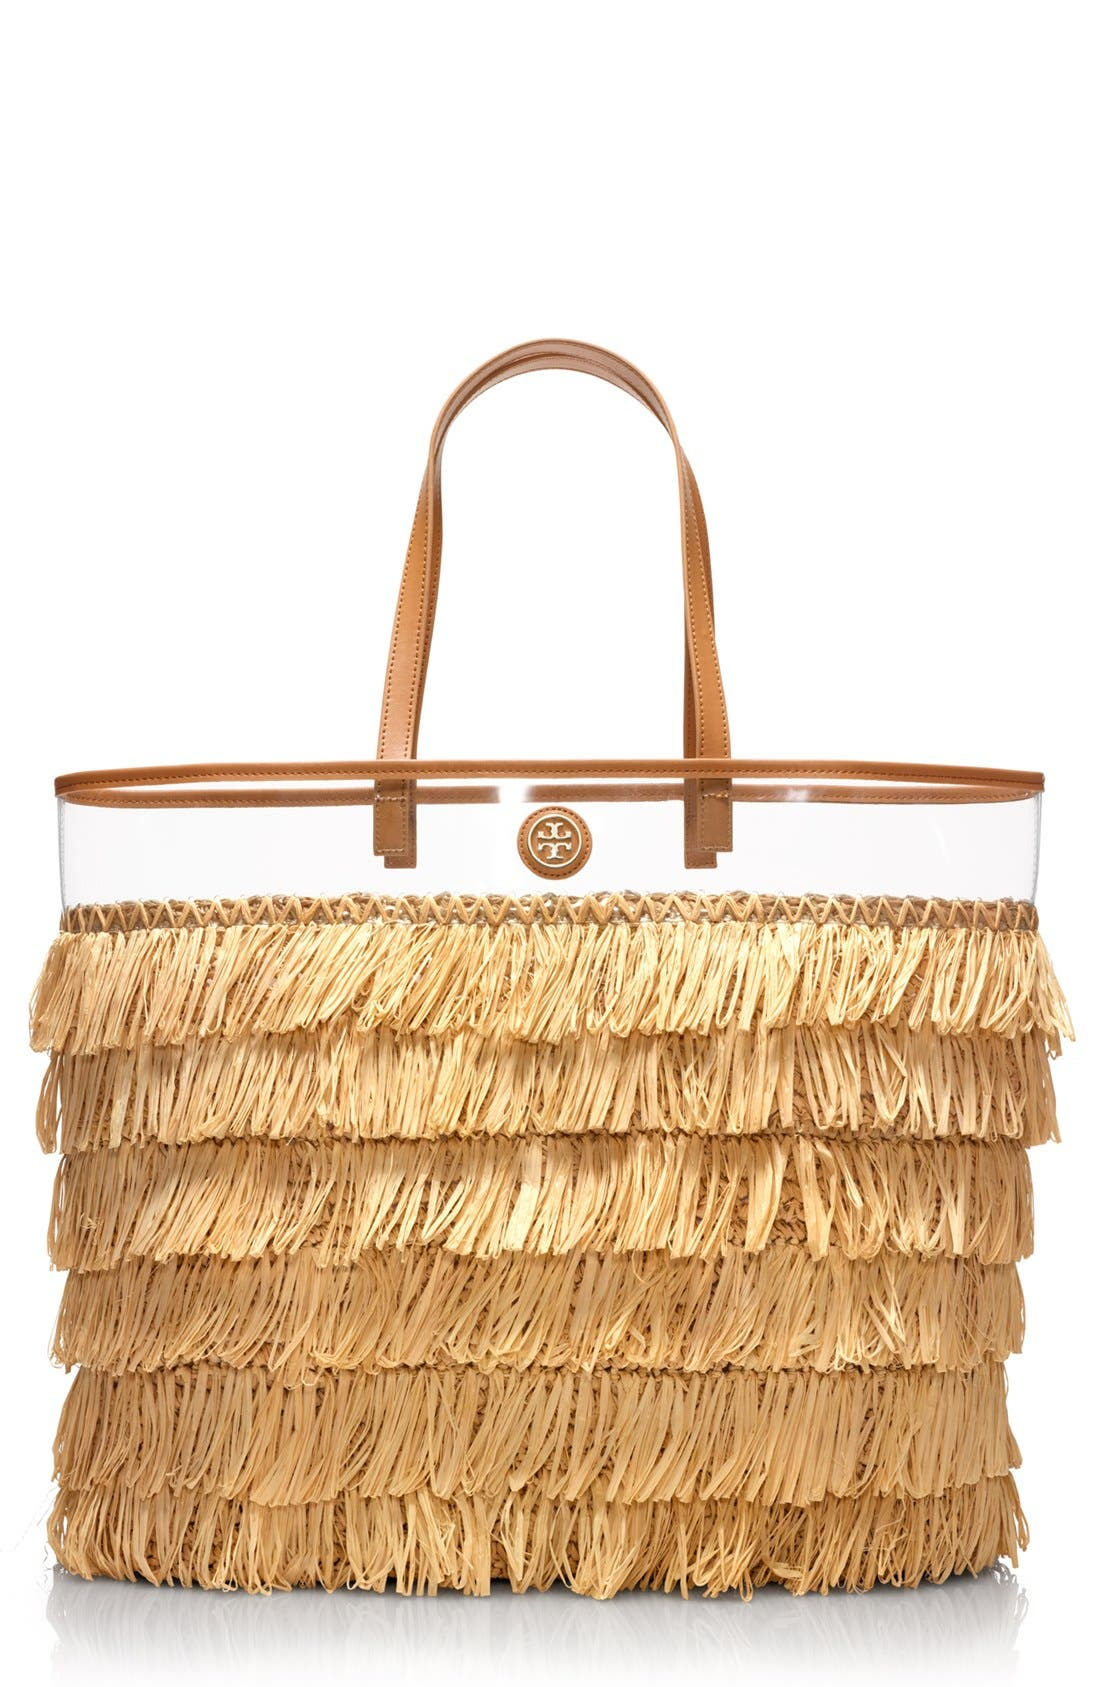 Alternate Image 1 Selected - Tory Burch 'Molly' Tote